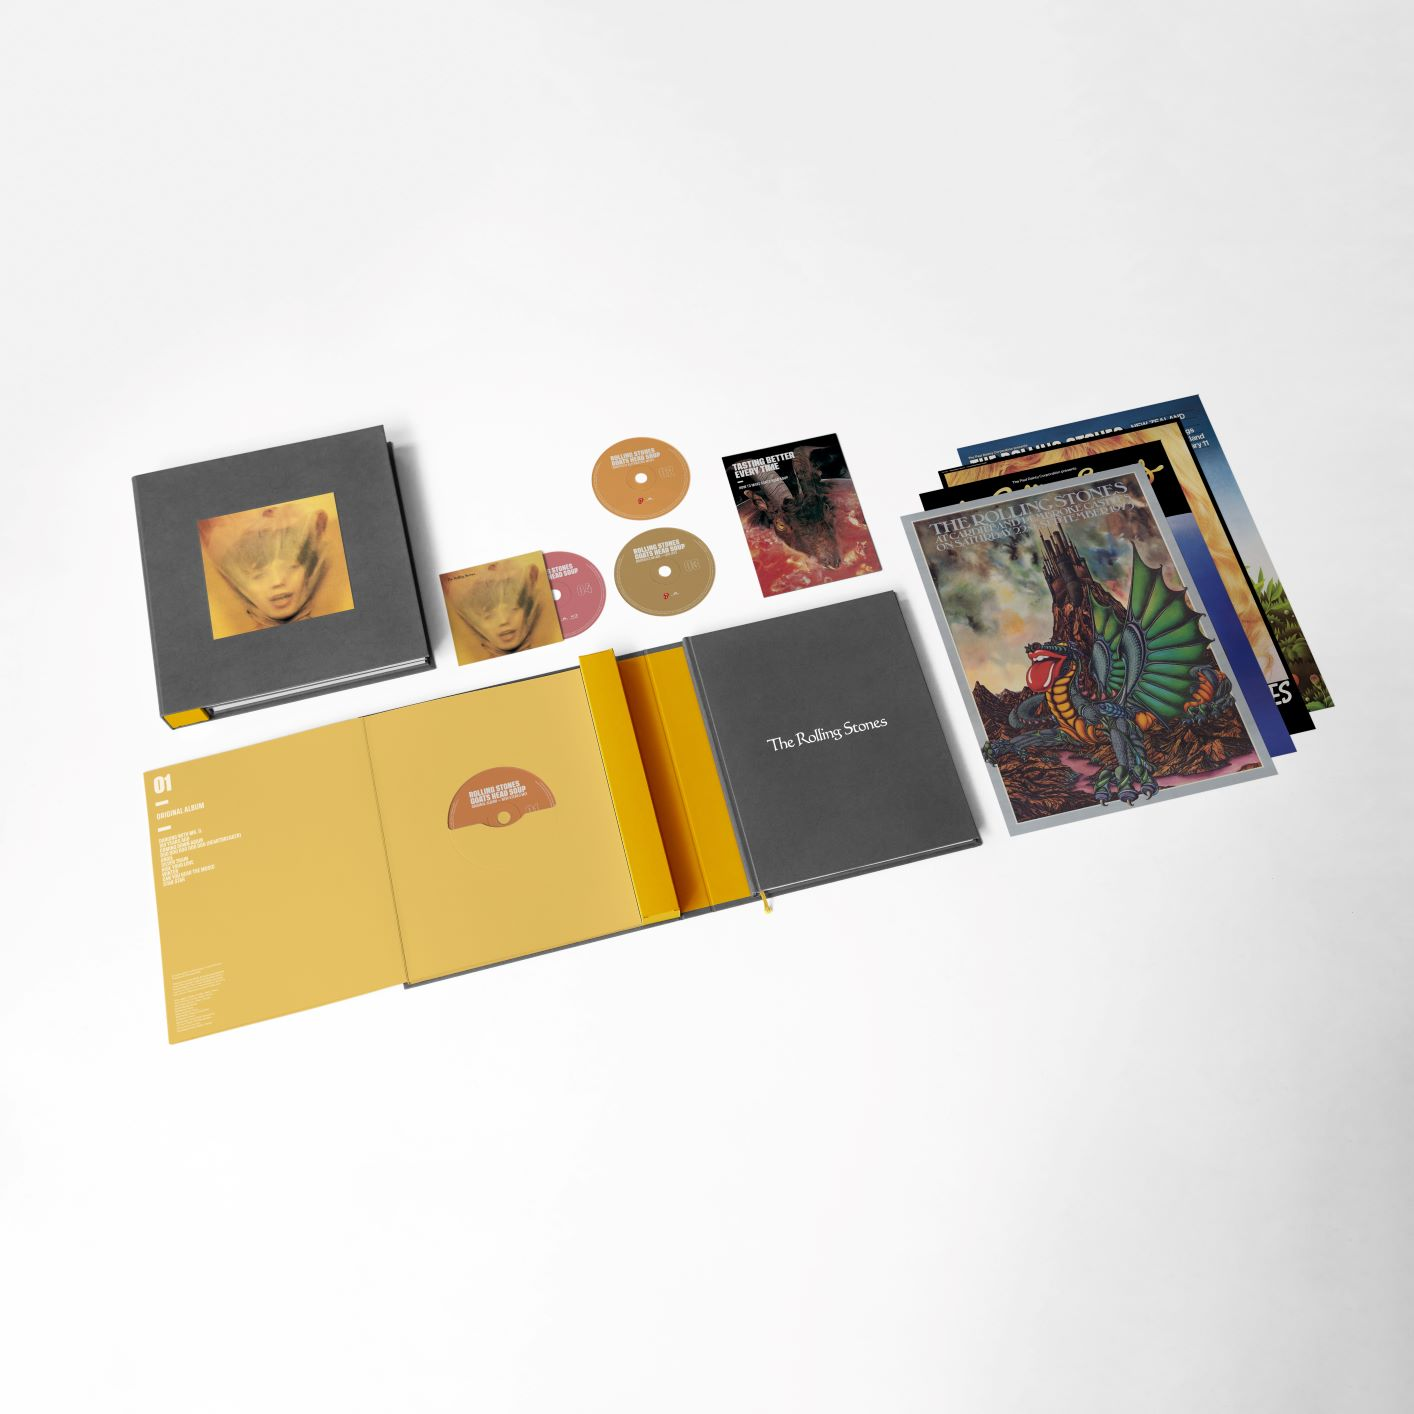 3CD/Blu-Ray Super Deluxe Box Set